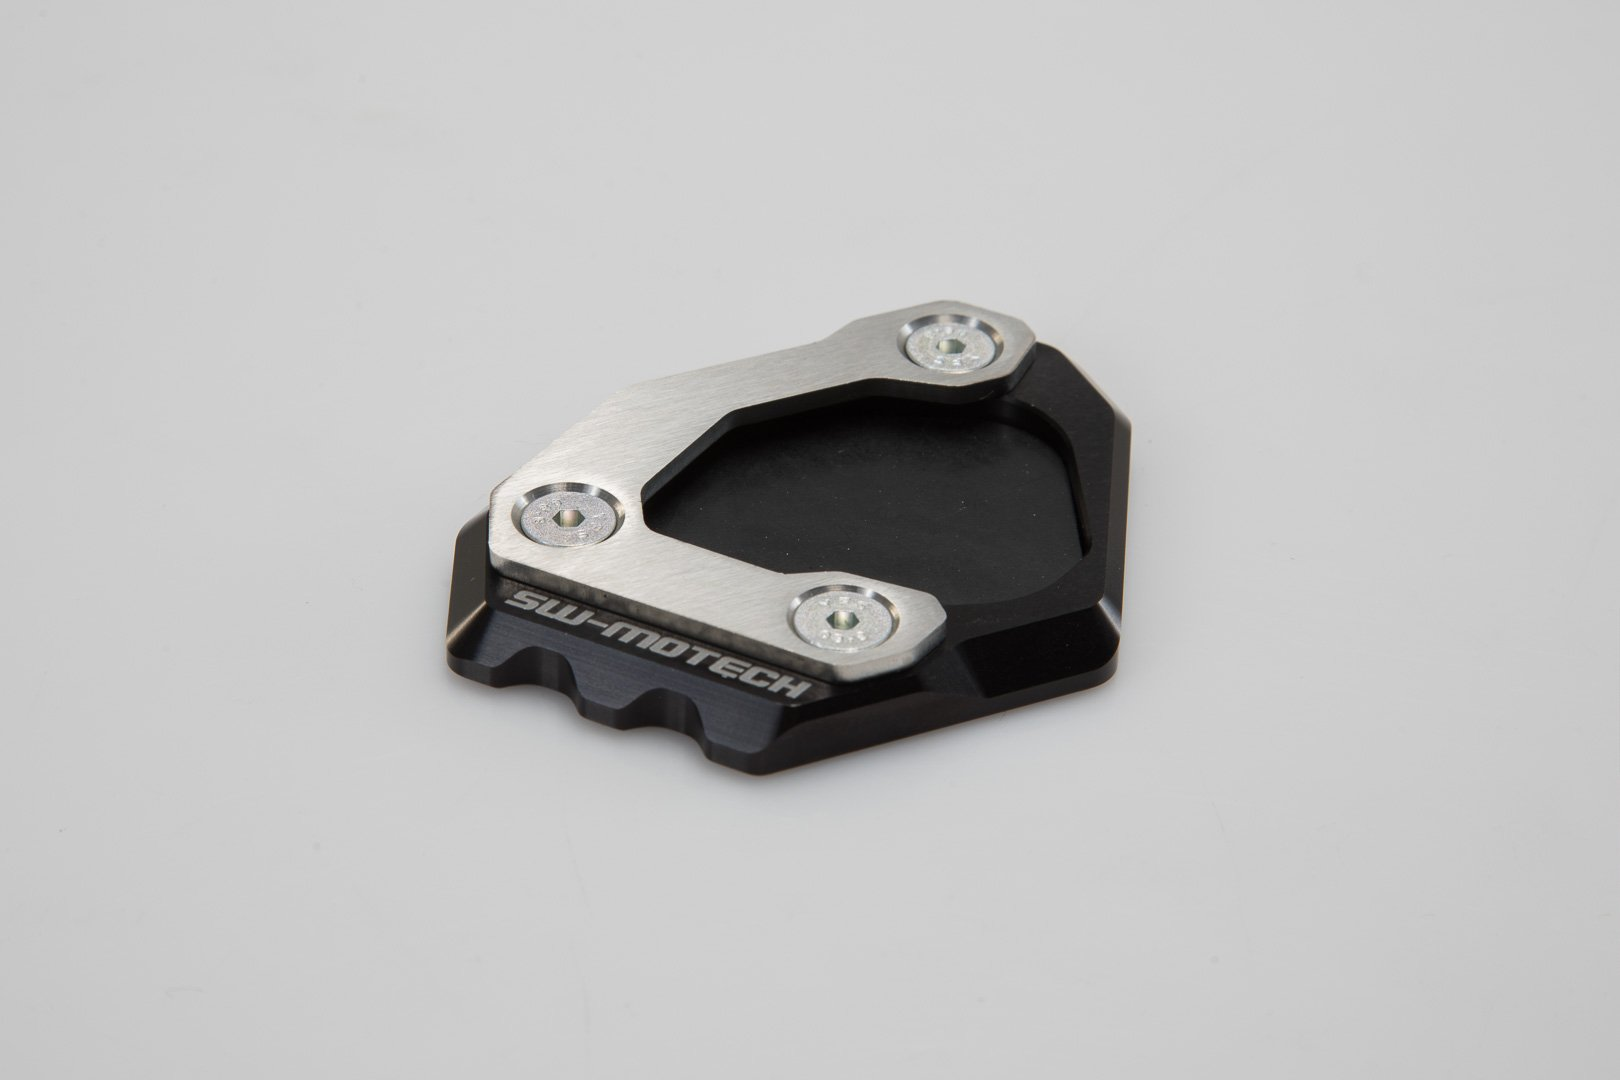 SW-Motech extension for side stand foot (black/silver) BMW G 310 GS (17-)